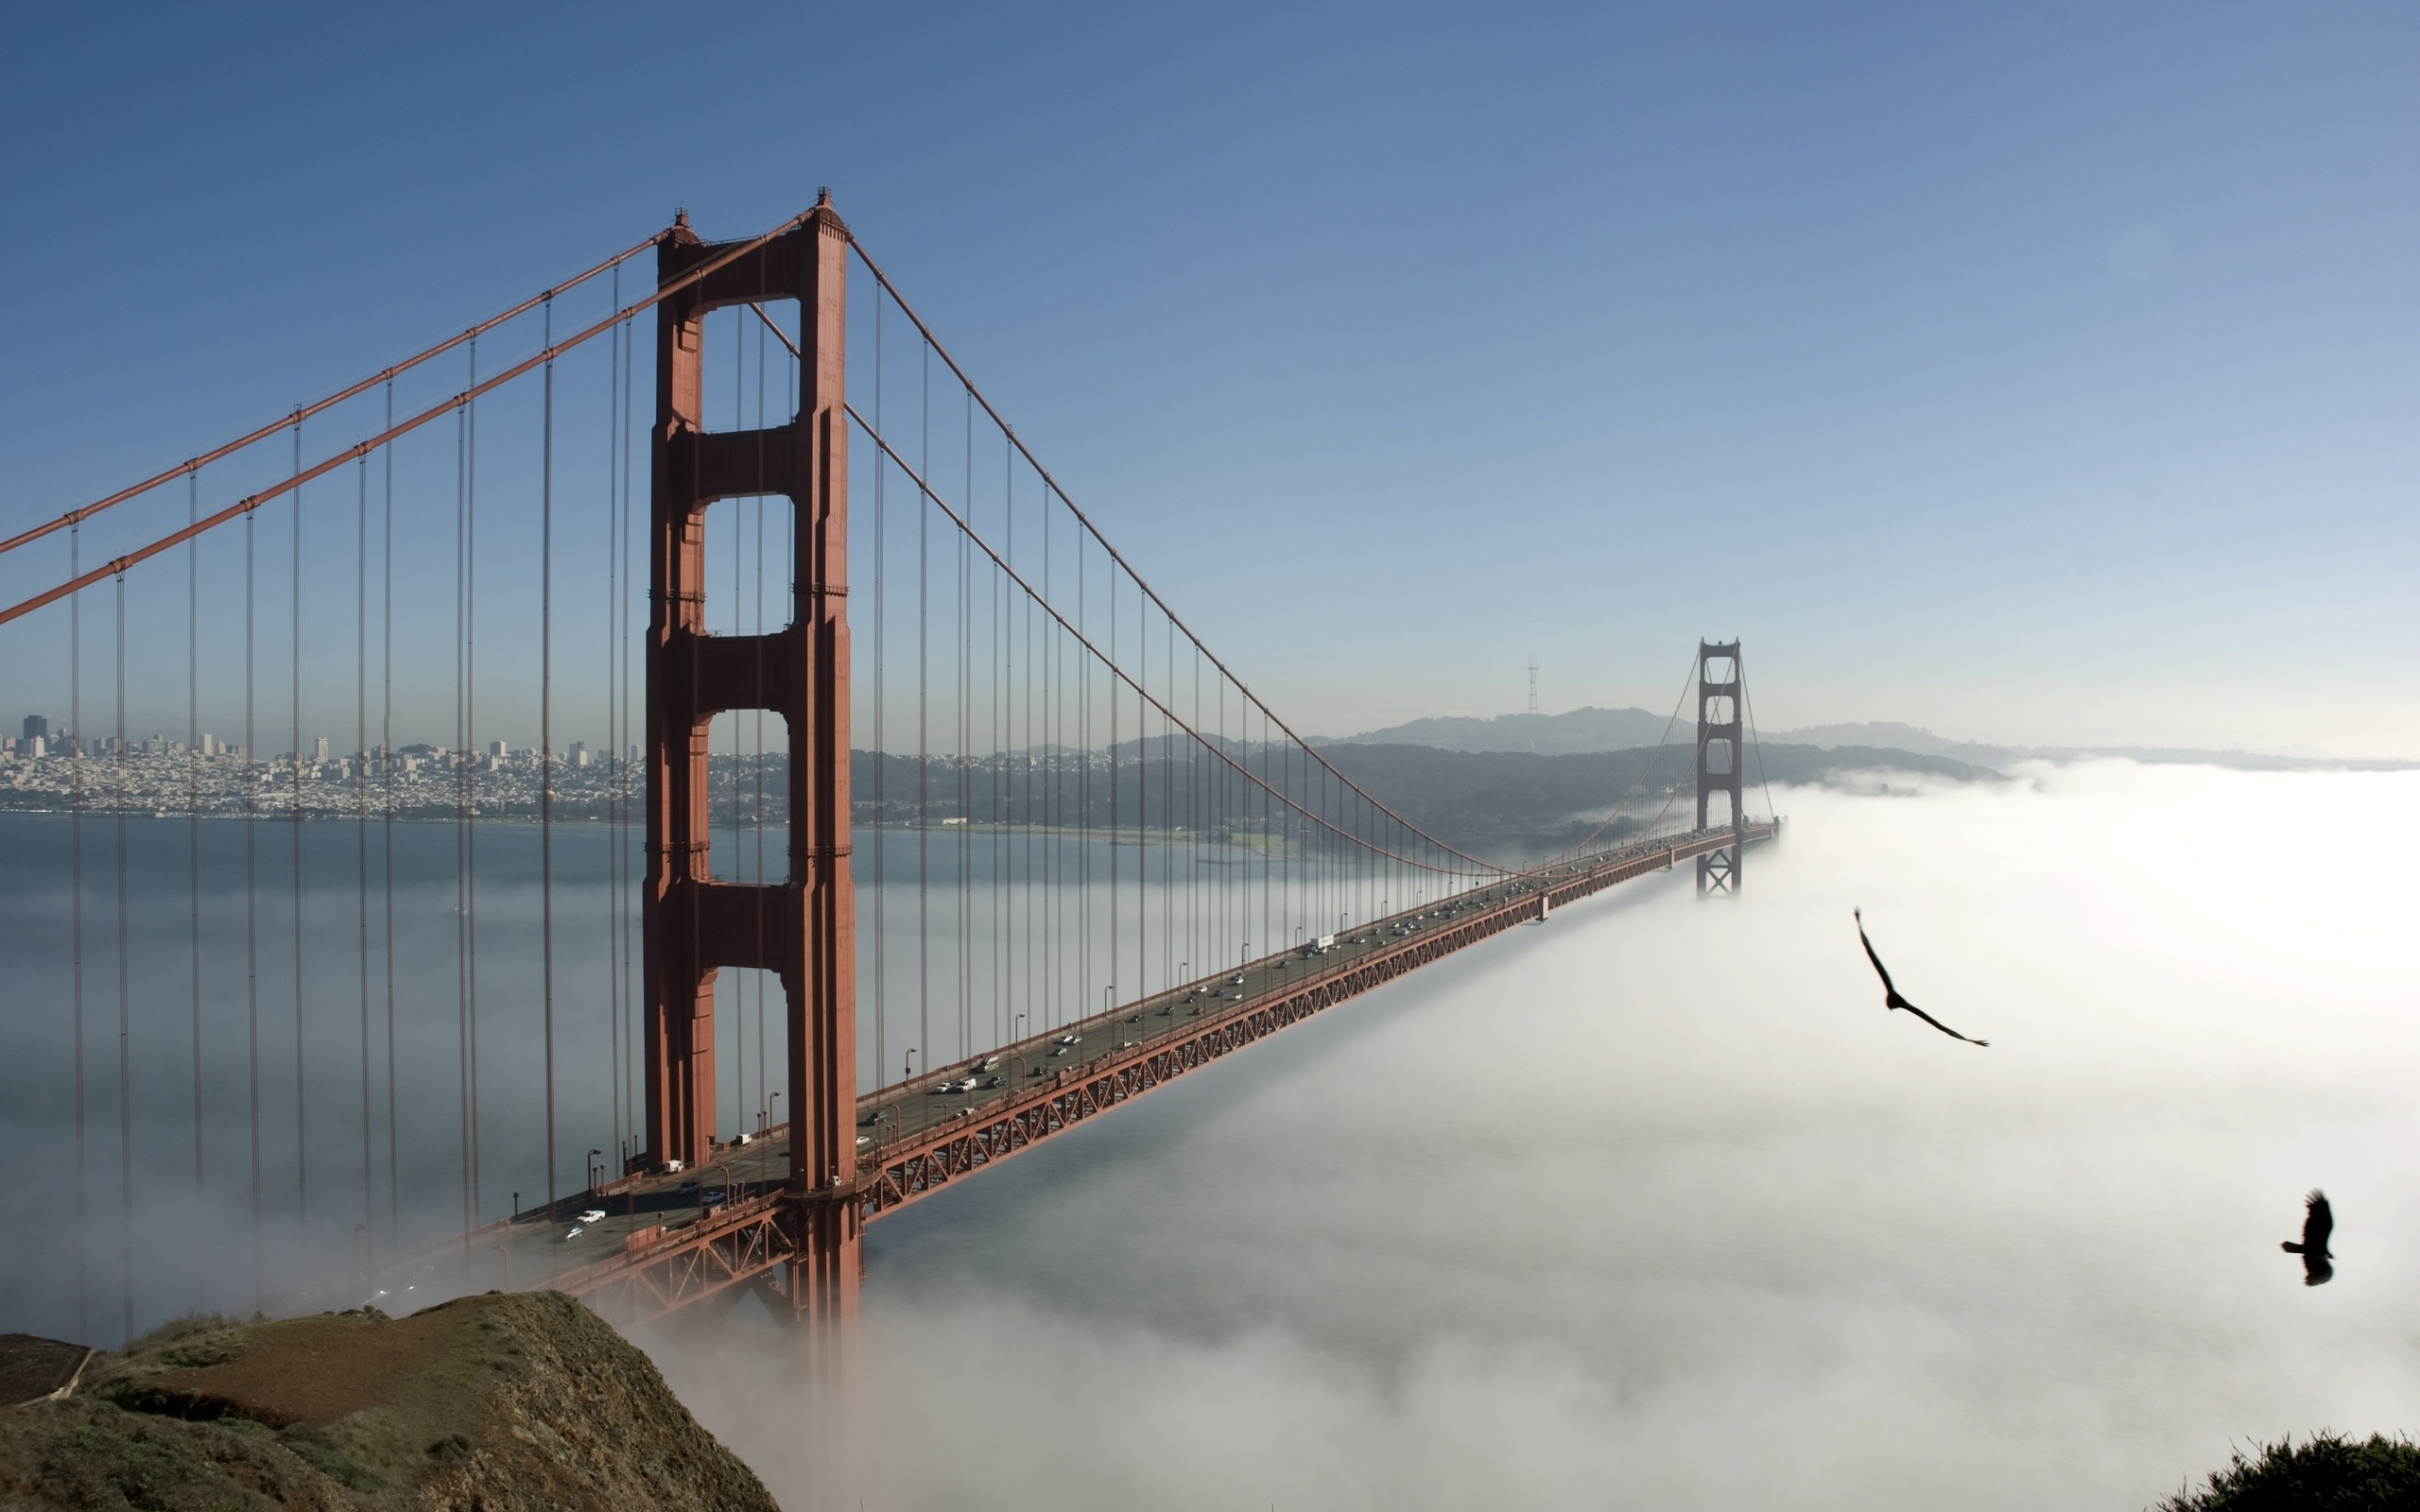 Golden Gate Hd Wallpaper Background Image 2560x1600 Id